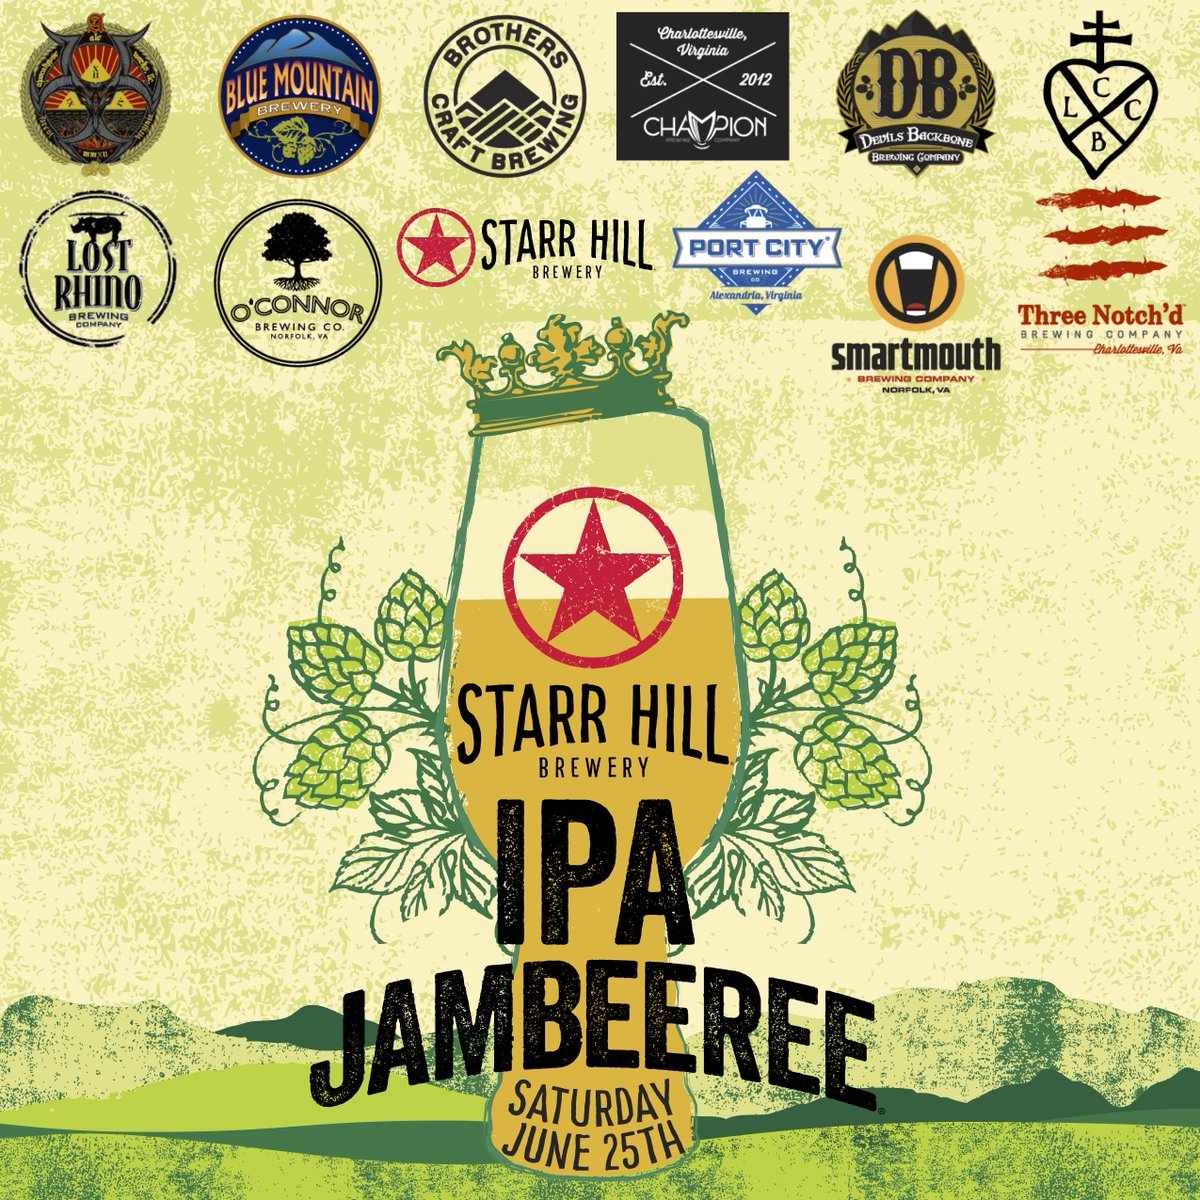 Announcing initial Brewery Lineup at IPA #JAMBEEREE beer fest celebrating IPAs in VA June 25 https://t.co/vGca4T1EwB https://t.co/B4TfCo7VCf